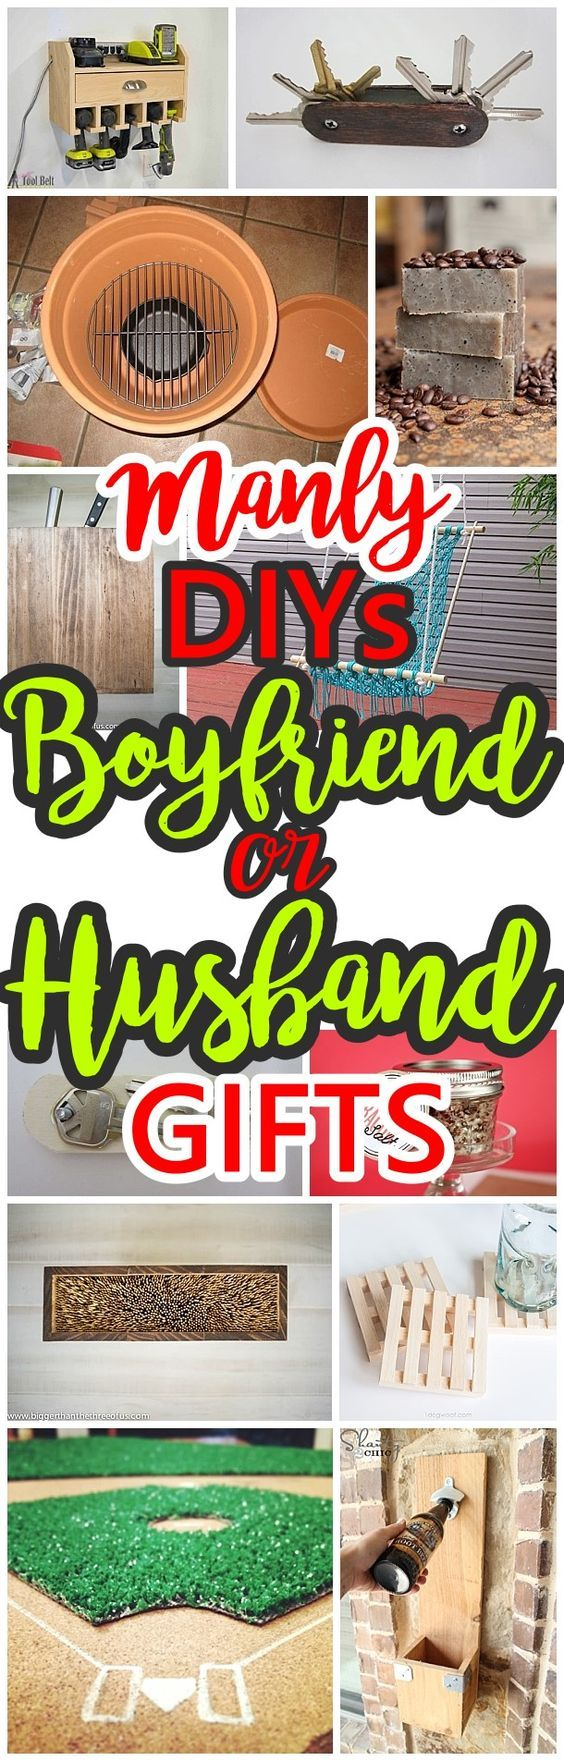 Do it Yourself Manly Gift Ideas for Boyfriends, Husbands Sons, Brothers, Uncles, Cousins or any guy on your gift list! - DIY Christmas, Birthdays, Fathers Day, Graduation Presents or Anytime - Dreaming in DIY #giftsforboys #giftsformen #diygiftsformen #diygiftsforboys #christmasgiftsformen